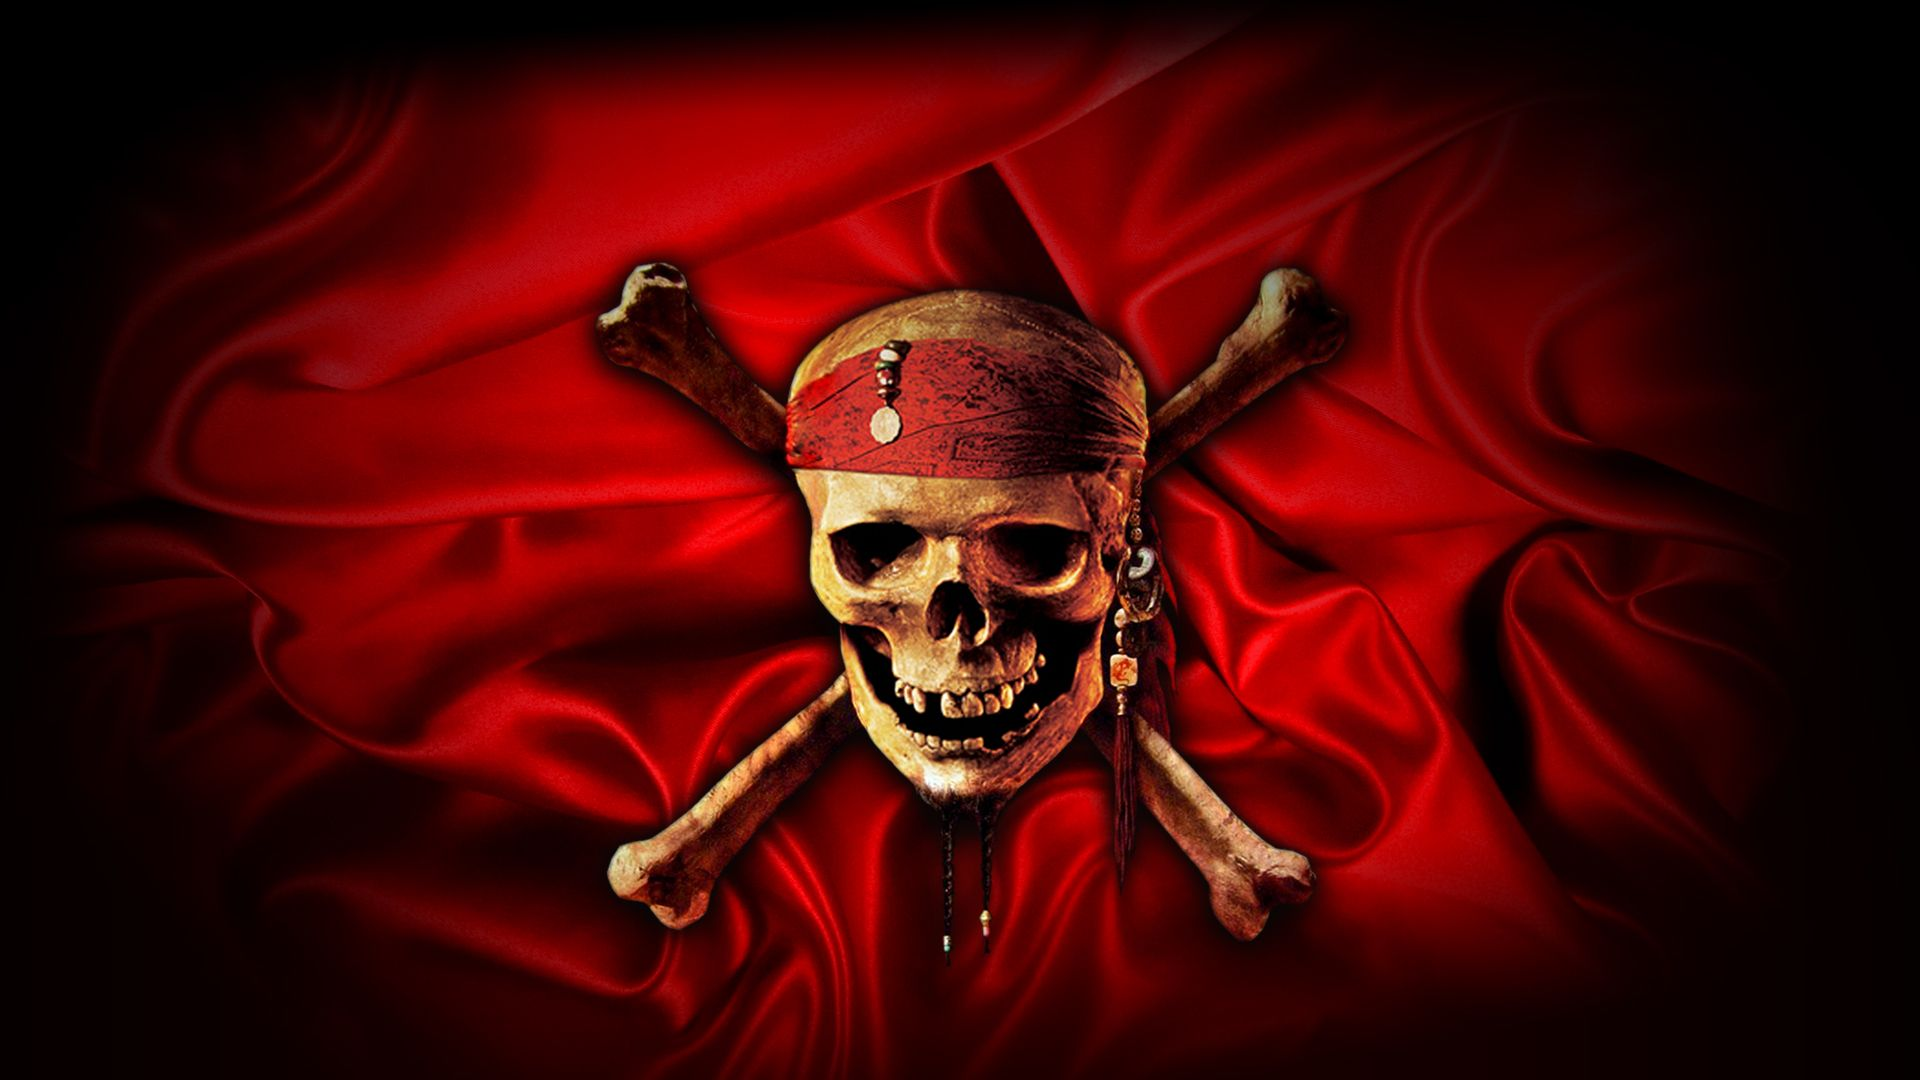 movie pirates of the caribbean: at world's end skull crossbones